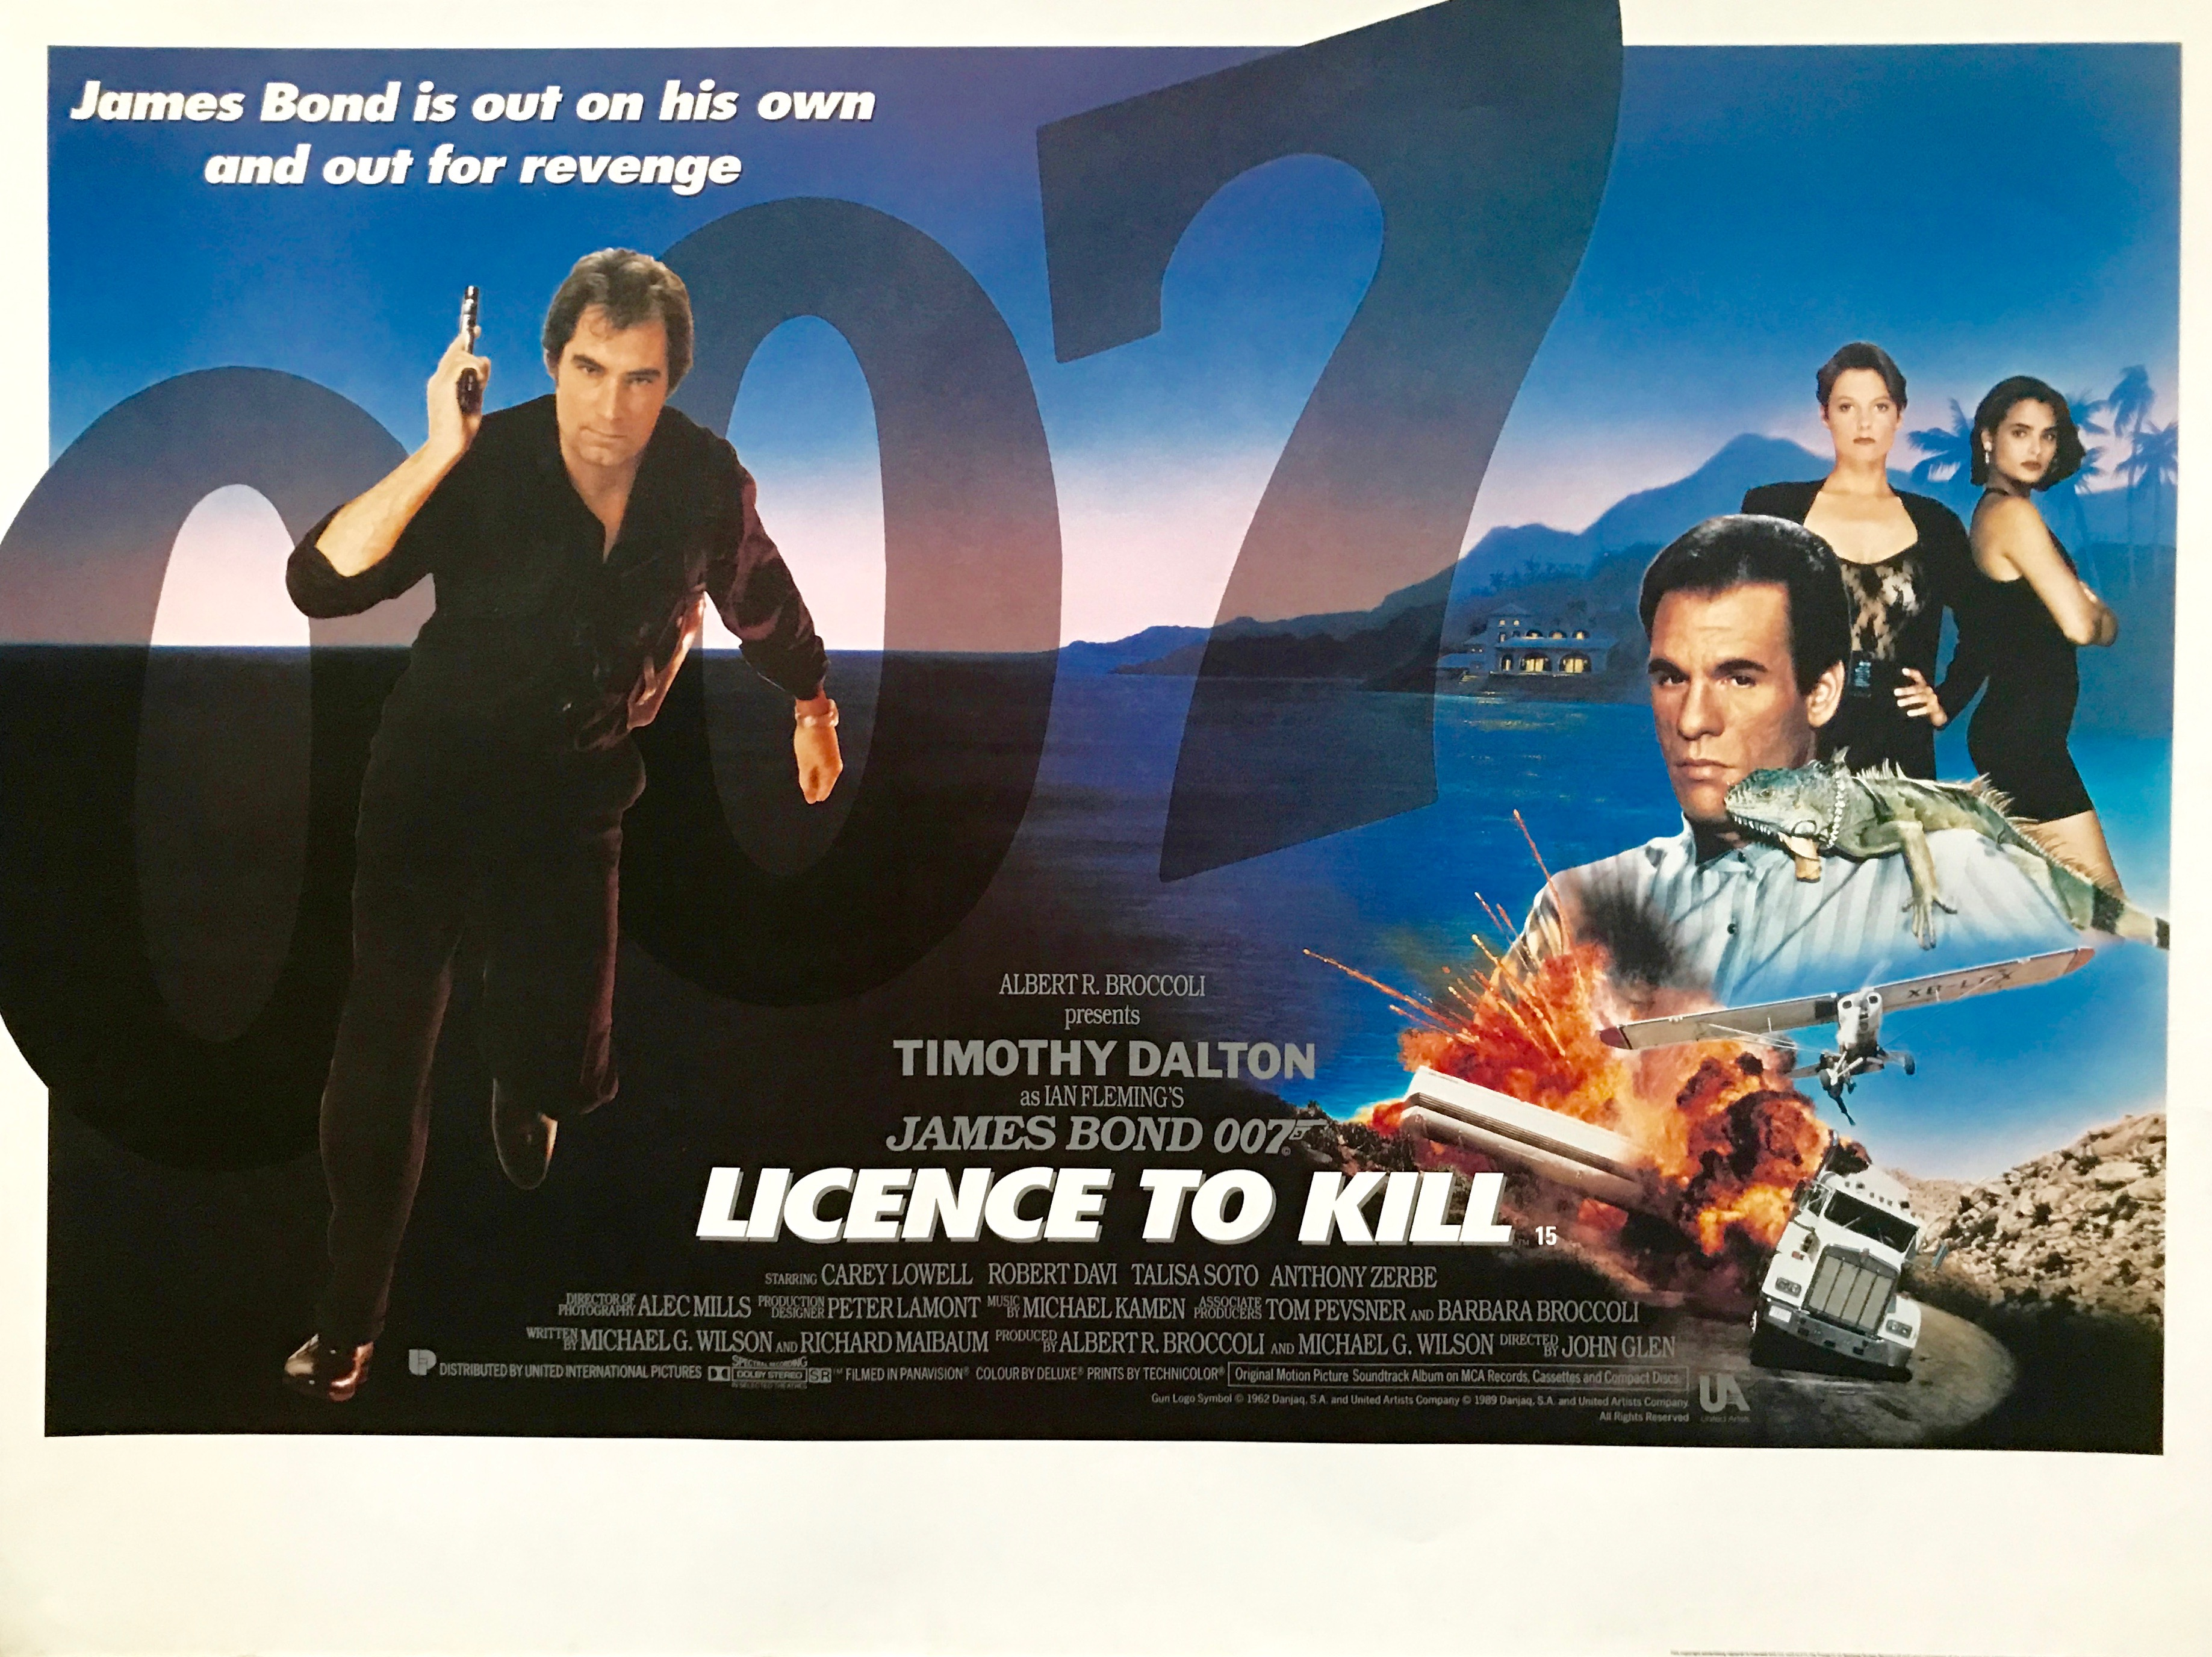 James Bond 007 Film Movie Poster Print A3 A4 Licence to Kill Living Daylights